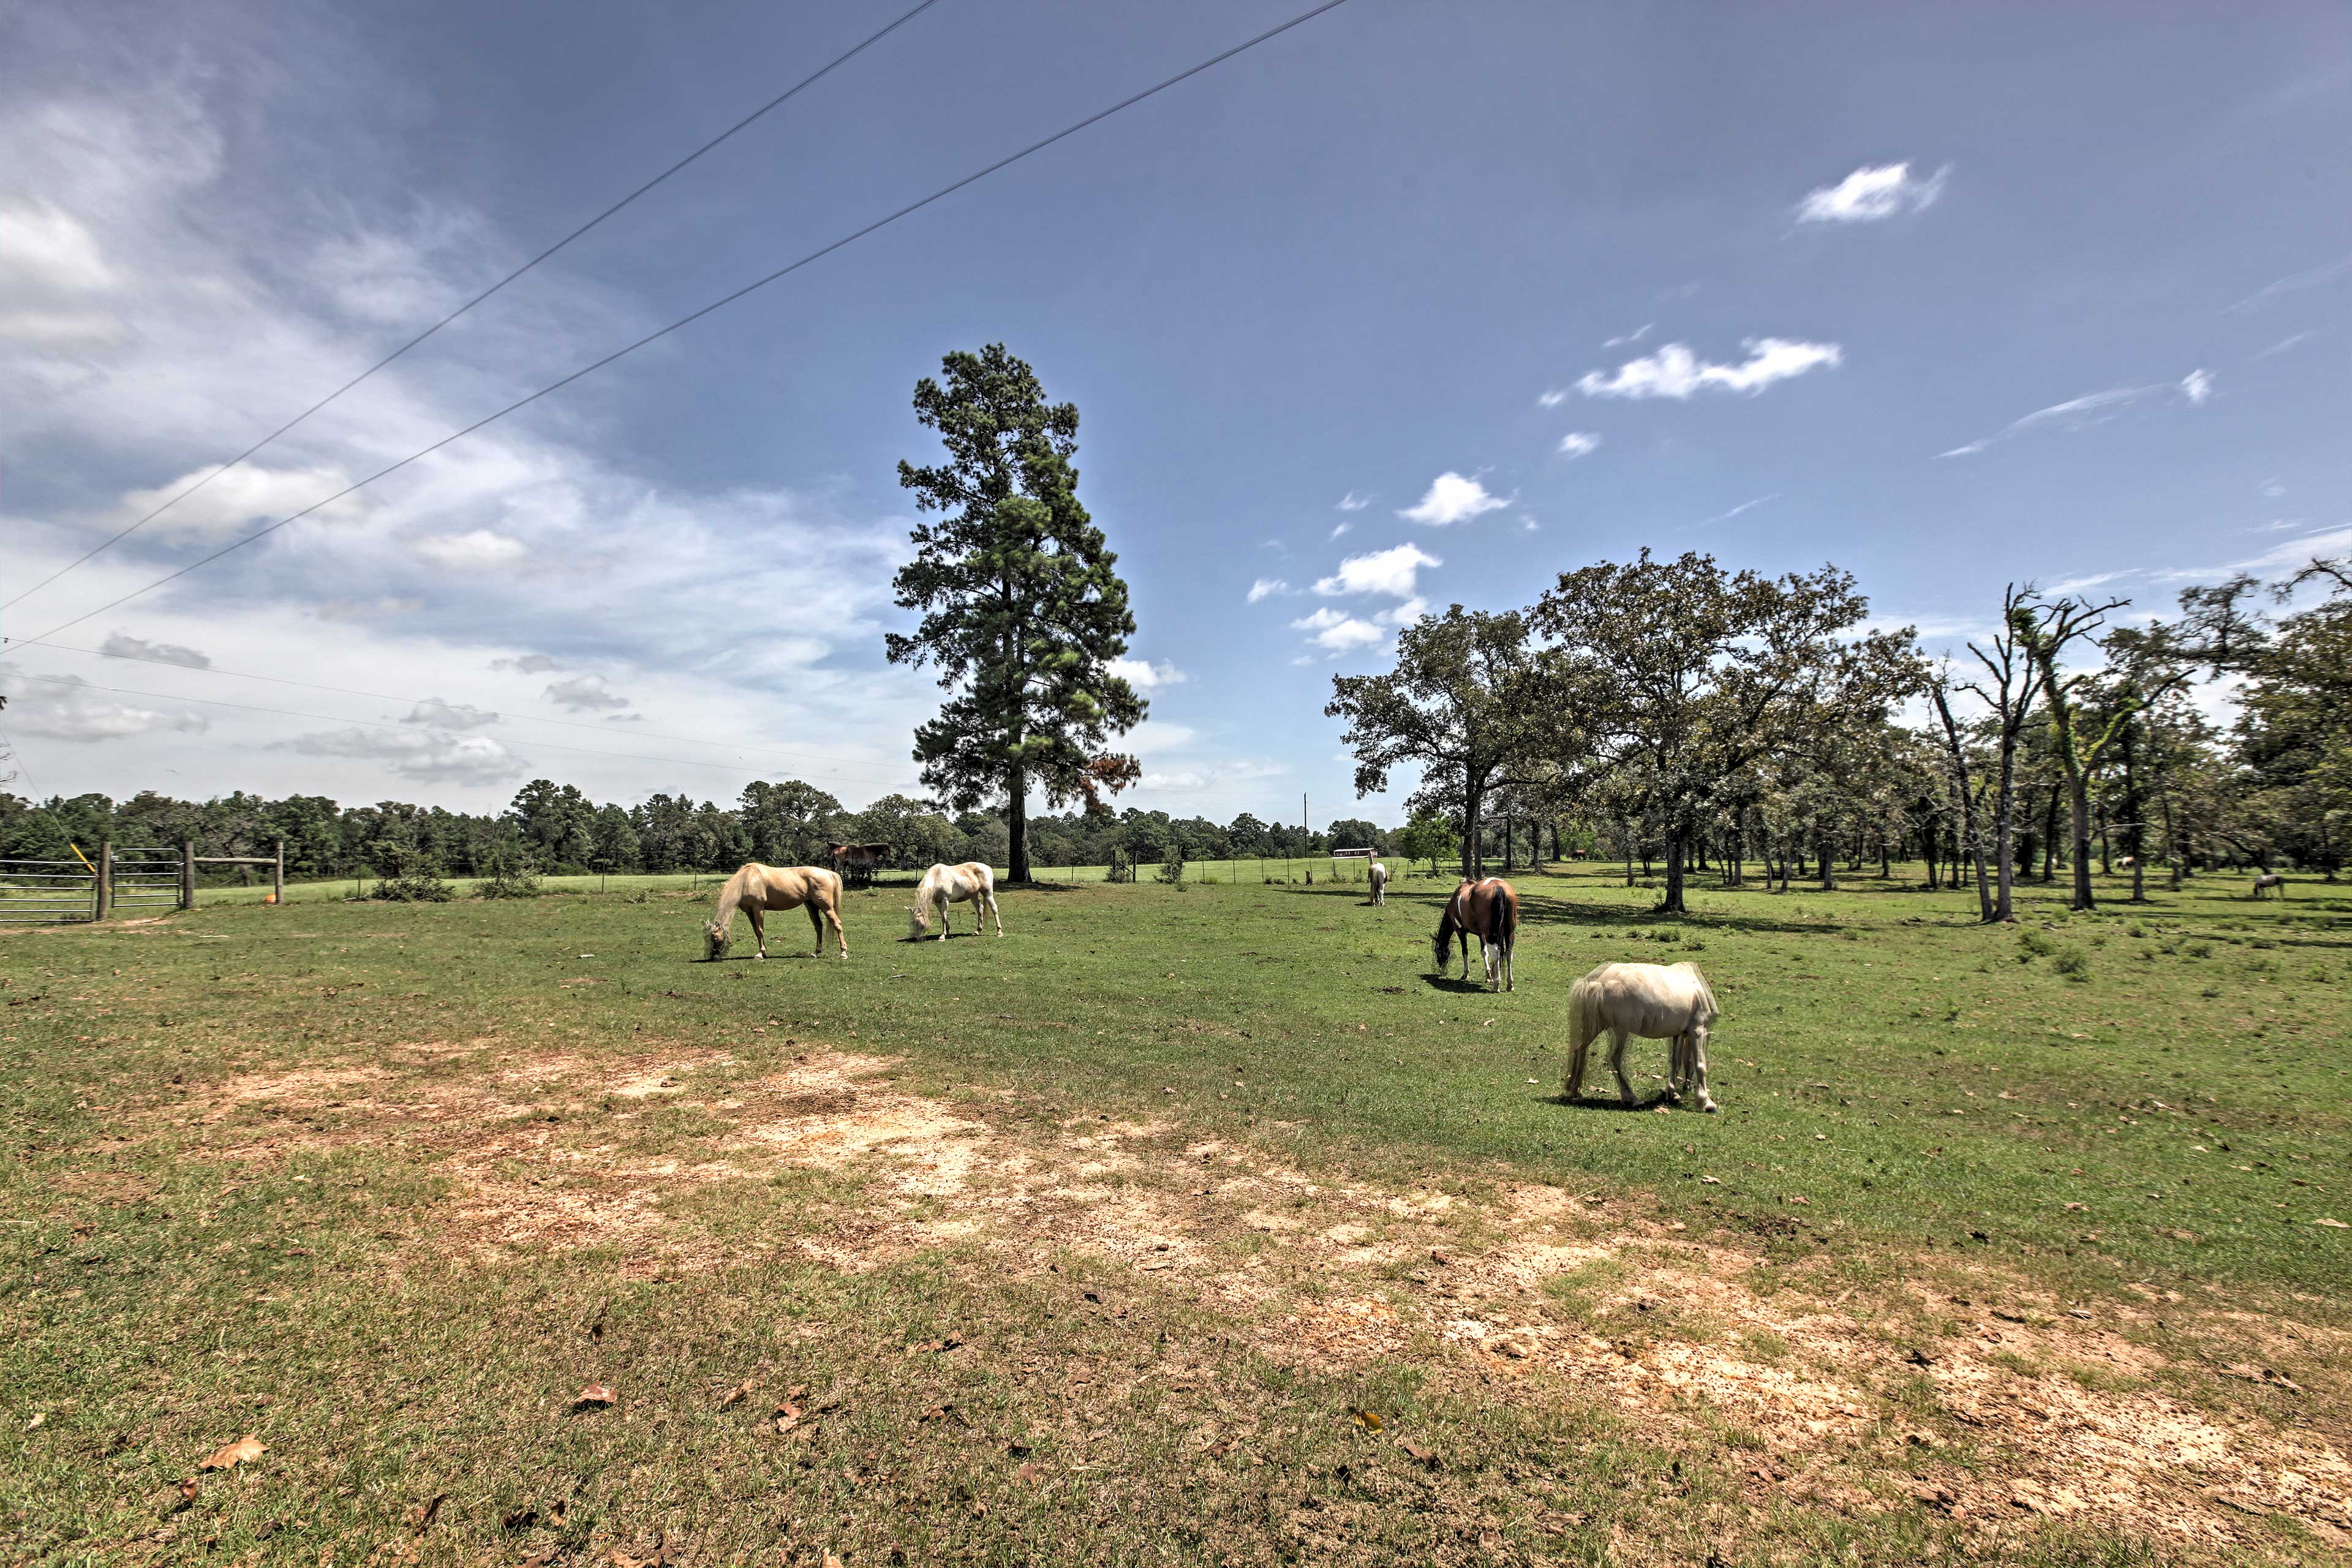 You'll find horses grazing throughout the farmland.